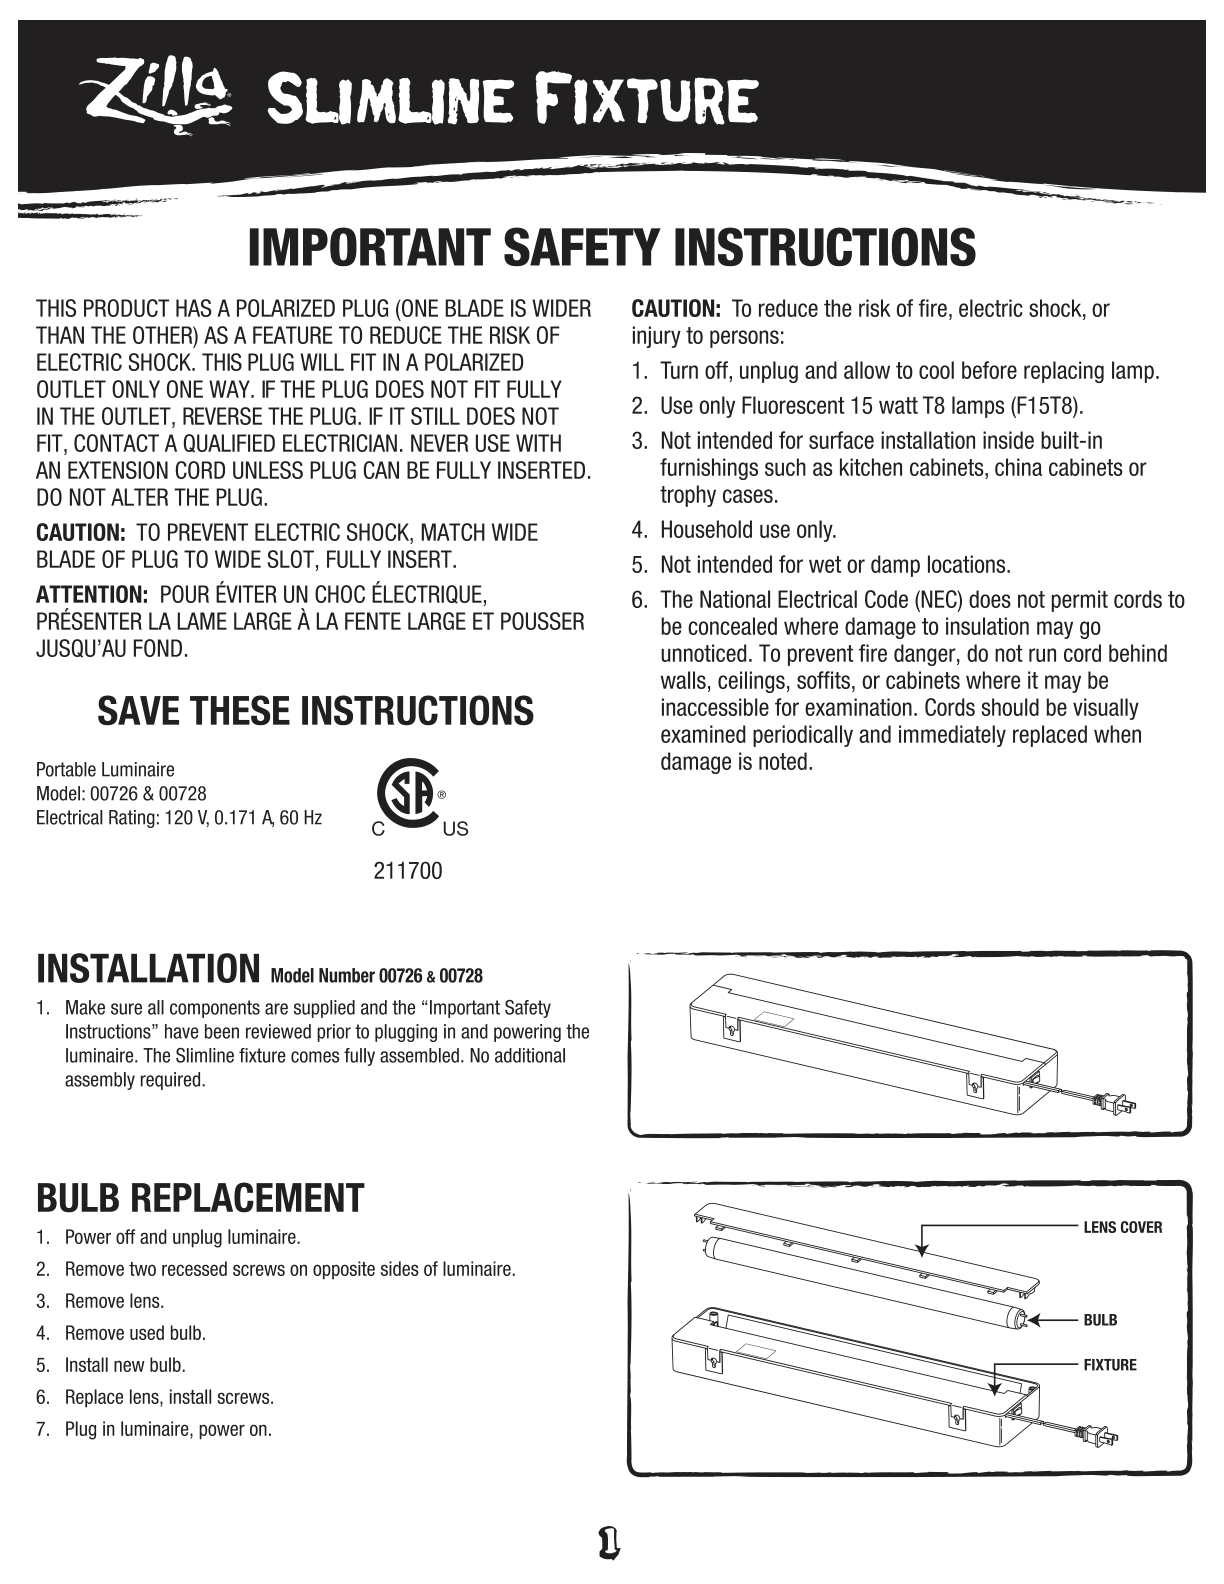 Slimline Tropical Fluorescent Light Instructions Sheet